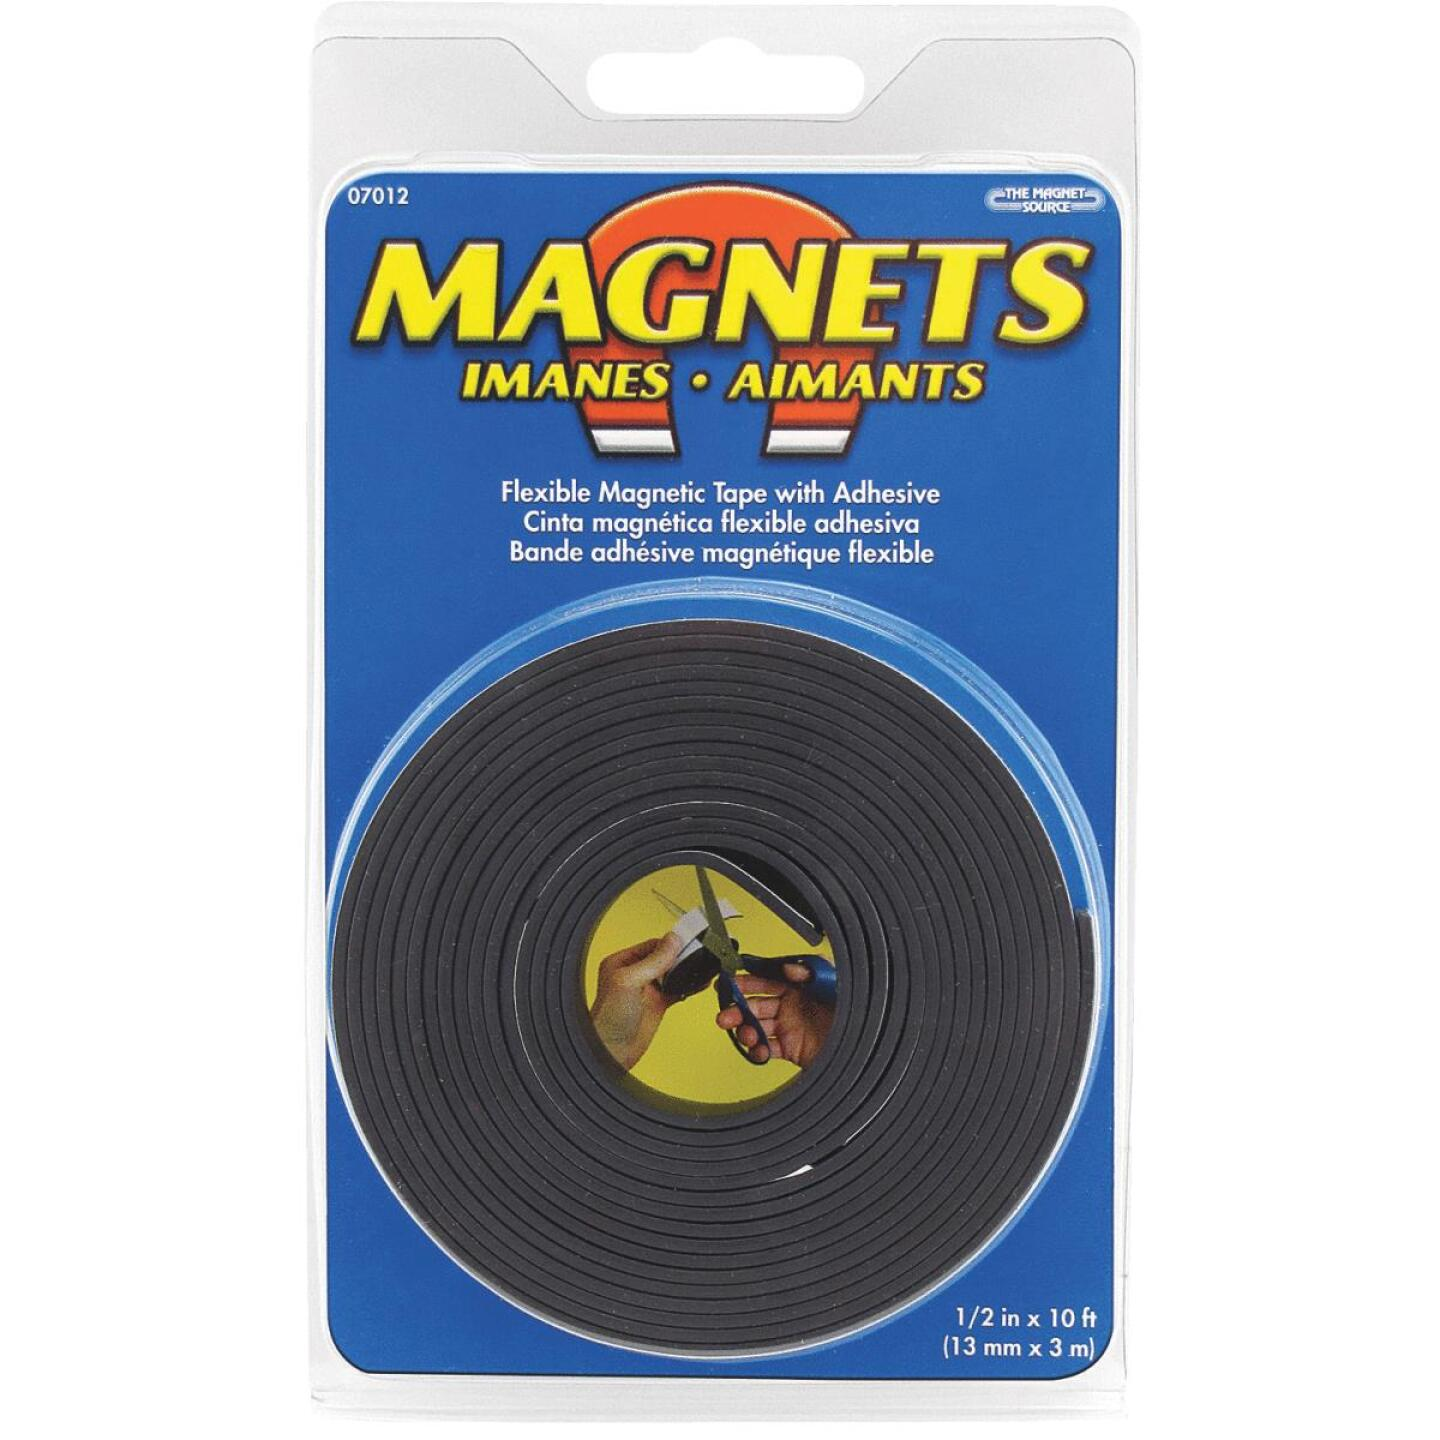 Master Magnetics 10 Ft. x 1/2 in. Magnetic Tape Image 3